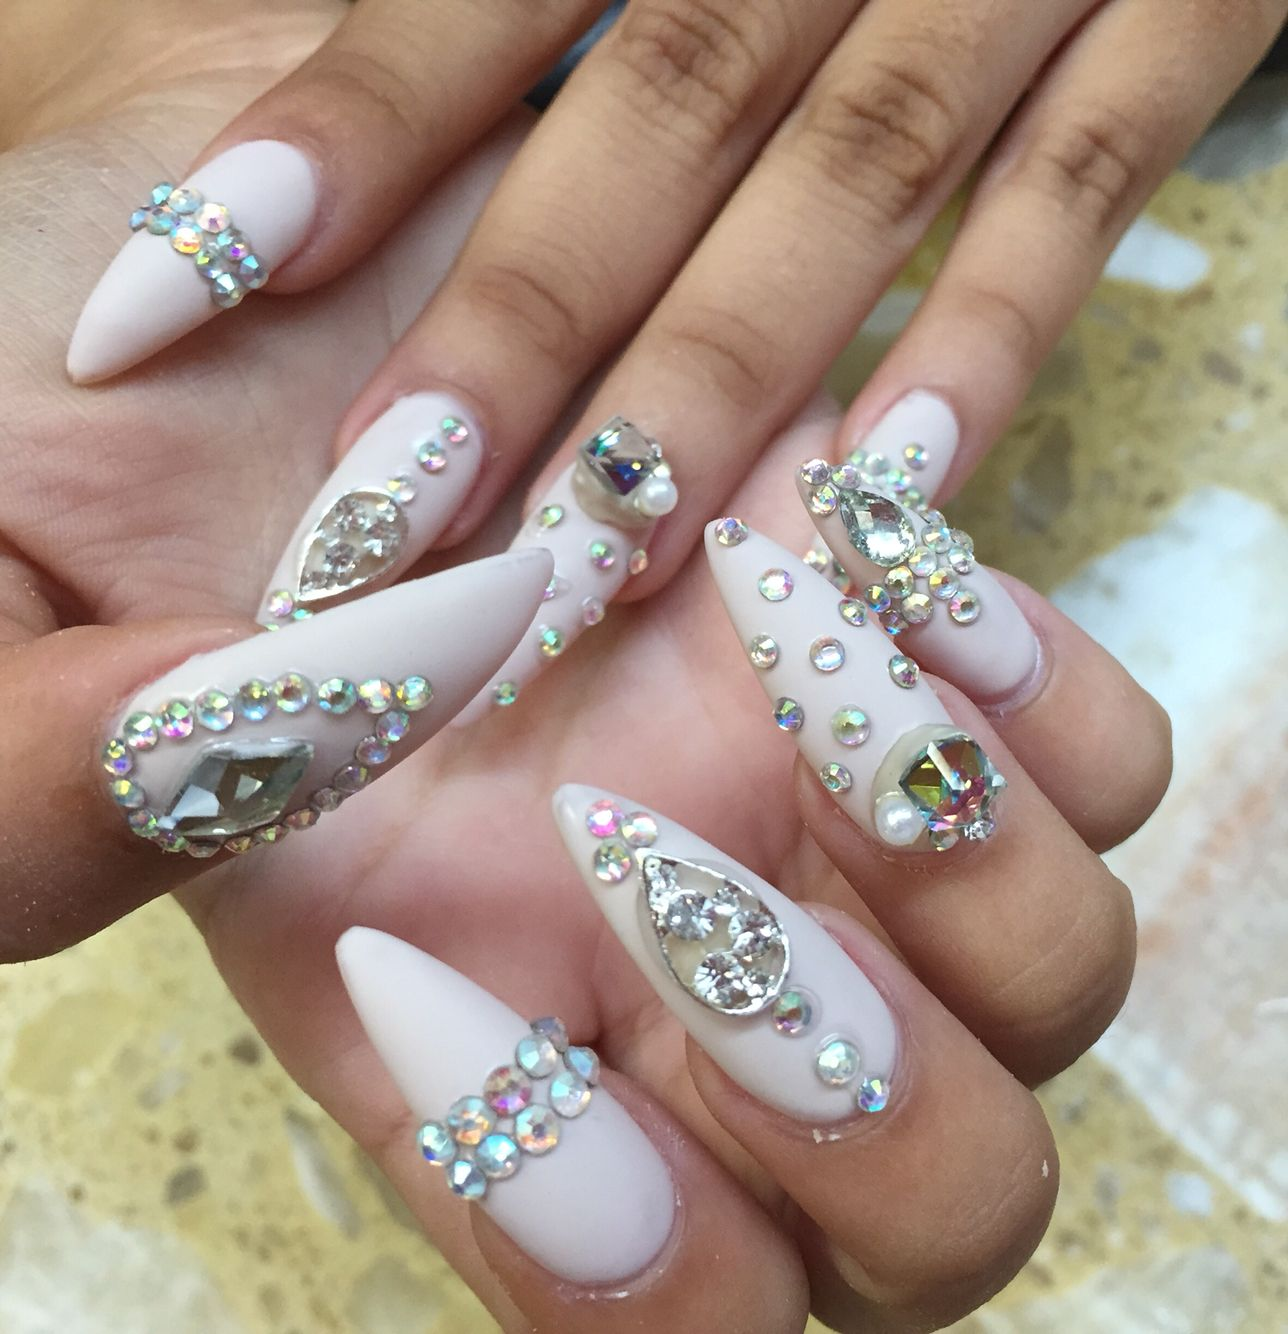 Blue glitter ombr 233 stiletto nails - Prom Nails Long Stiletto Nude Matte With Gems